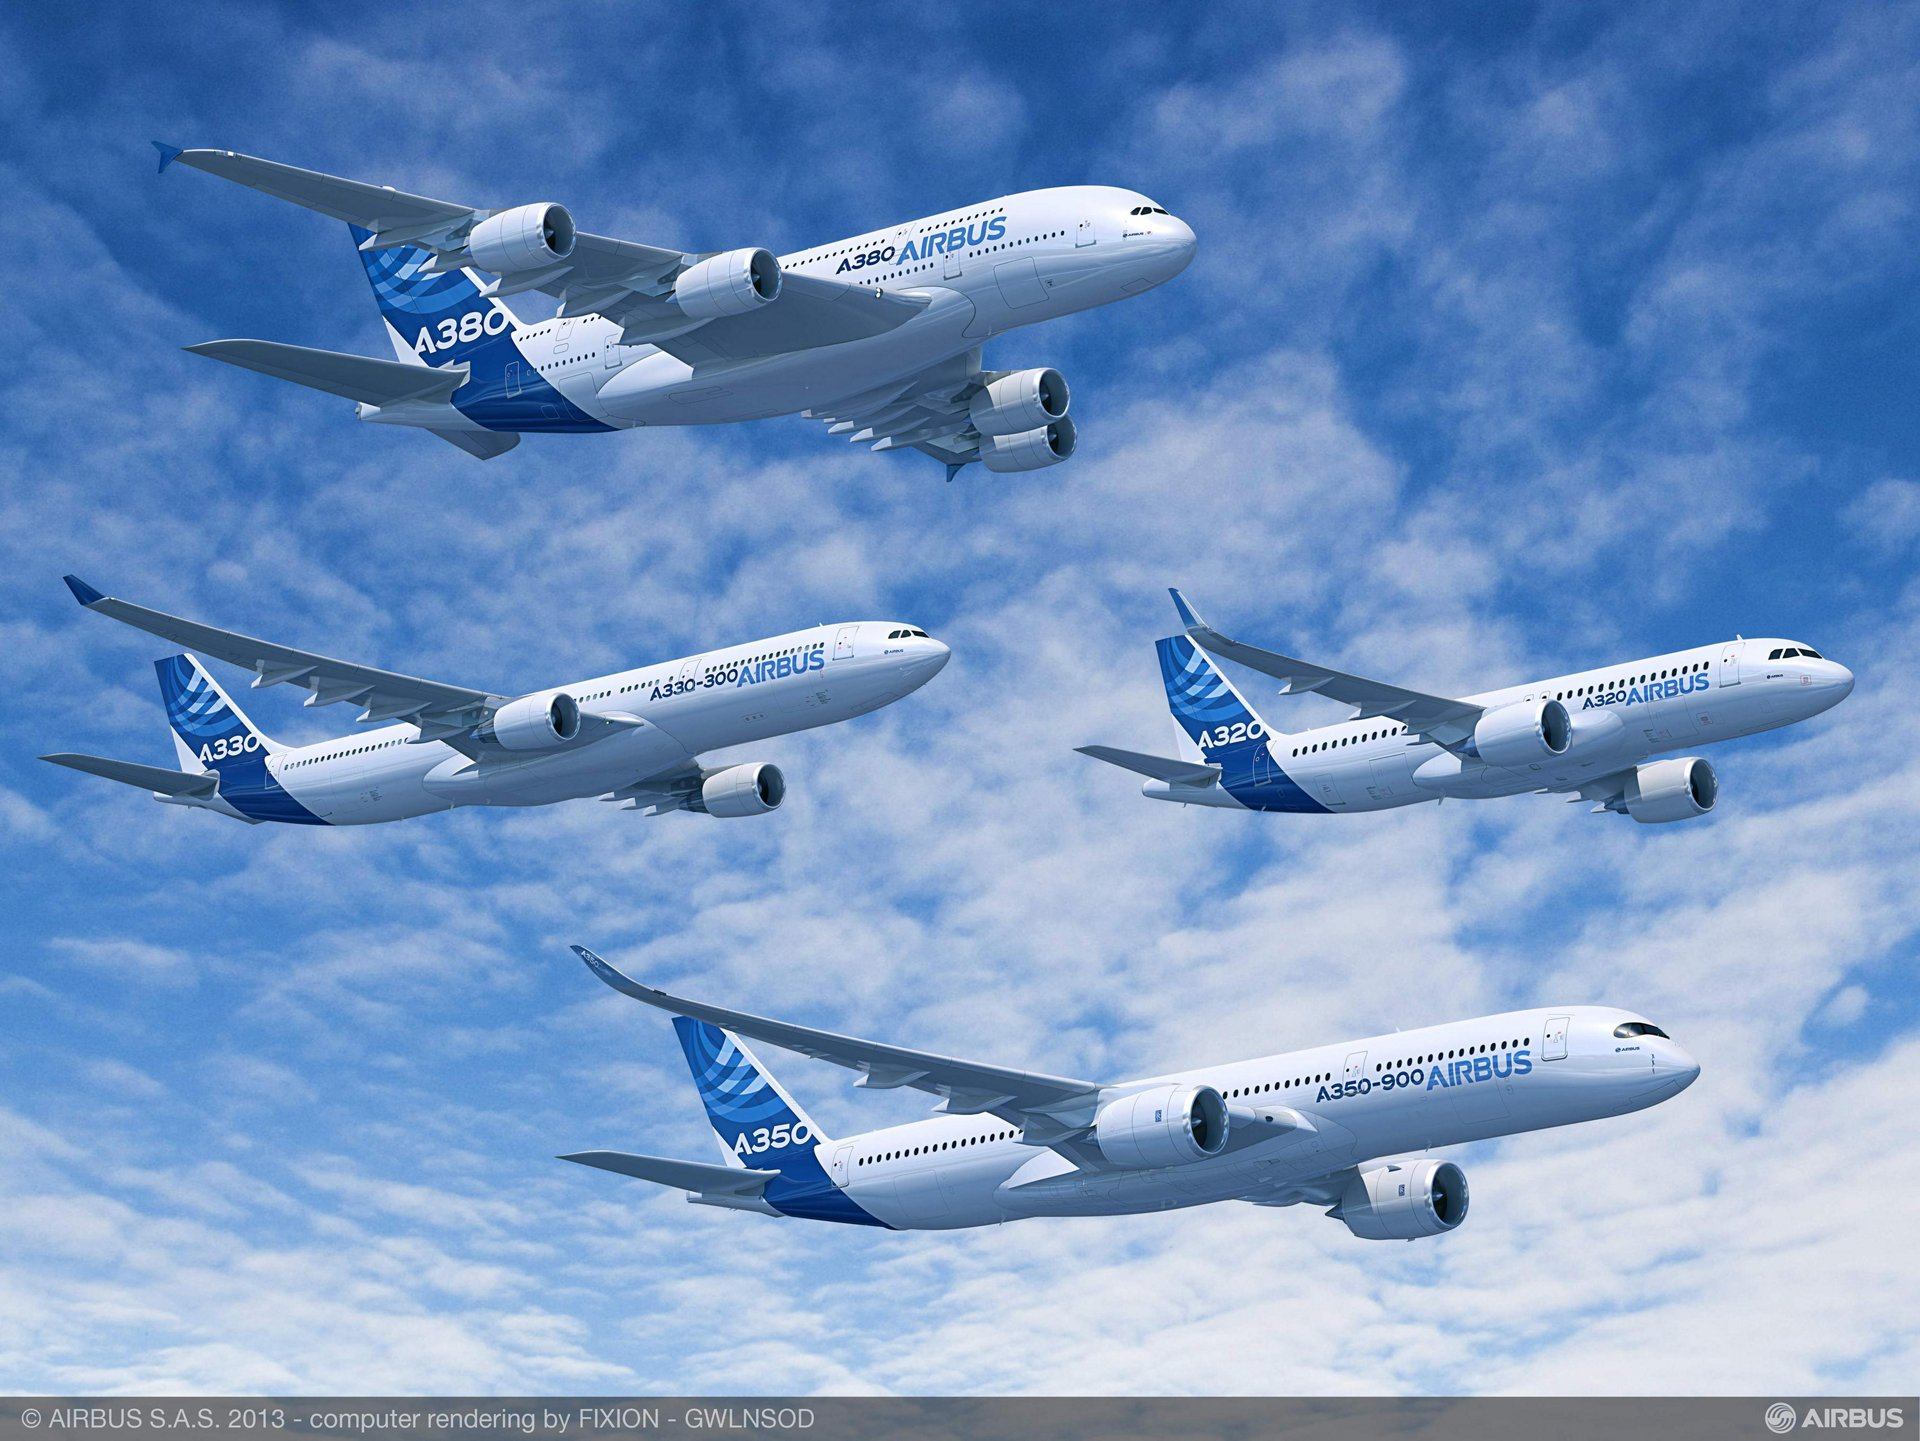 Airbus' product line of modern commercial jetliners includes the A320, A330, A350 XWB and A380 aircraft – which are depicted here in formation flight